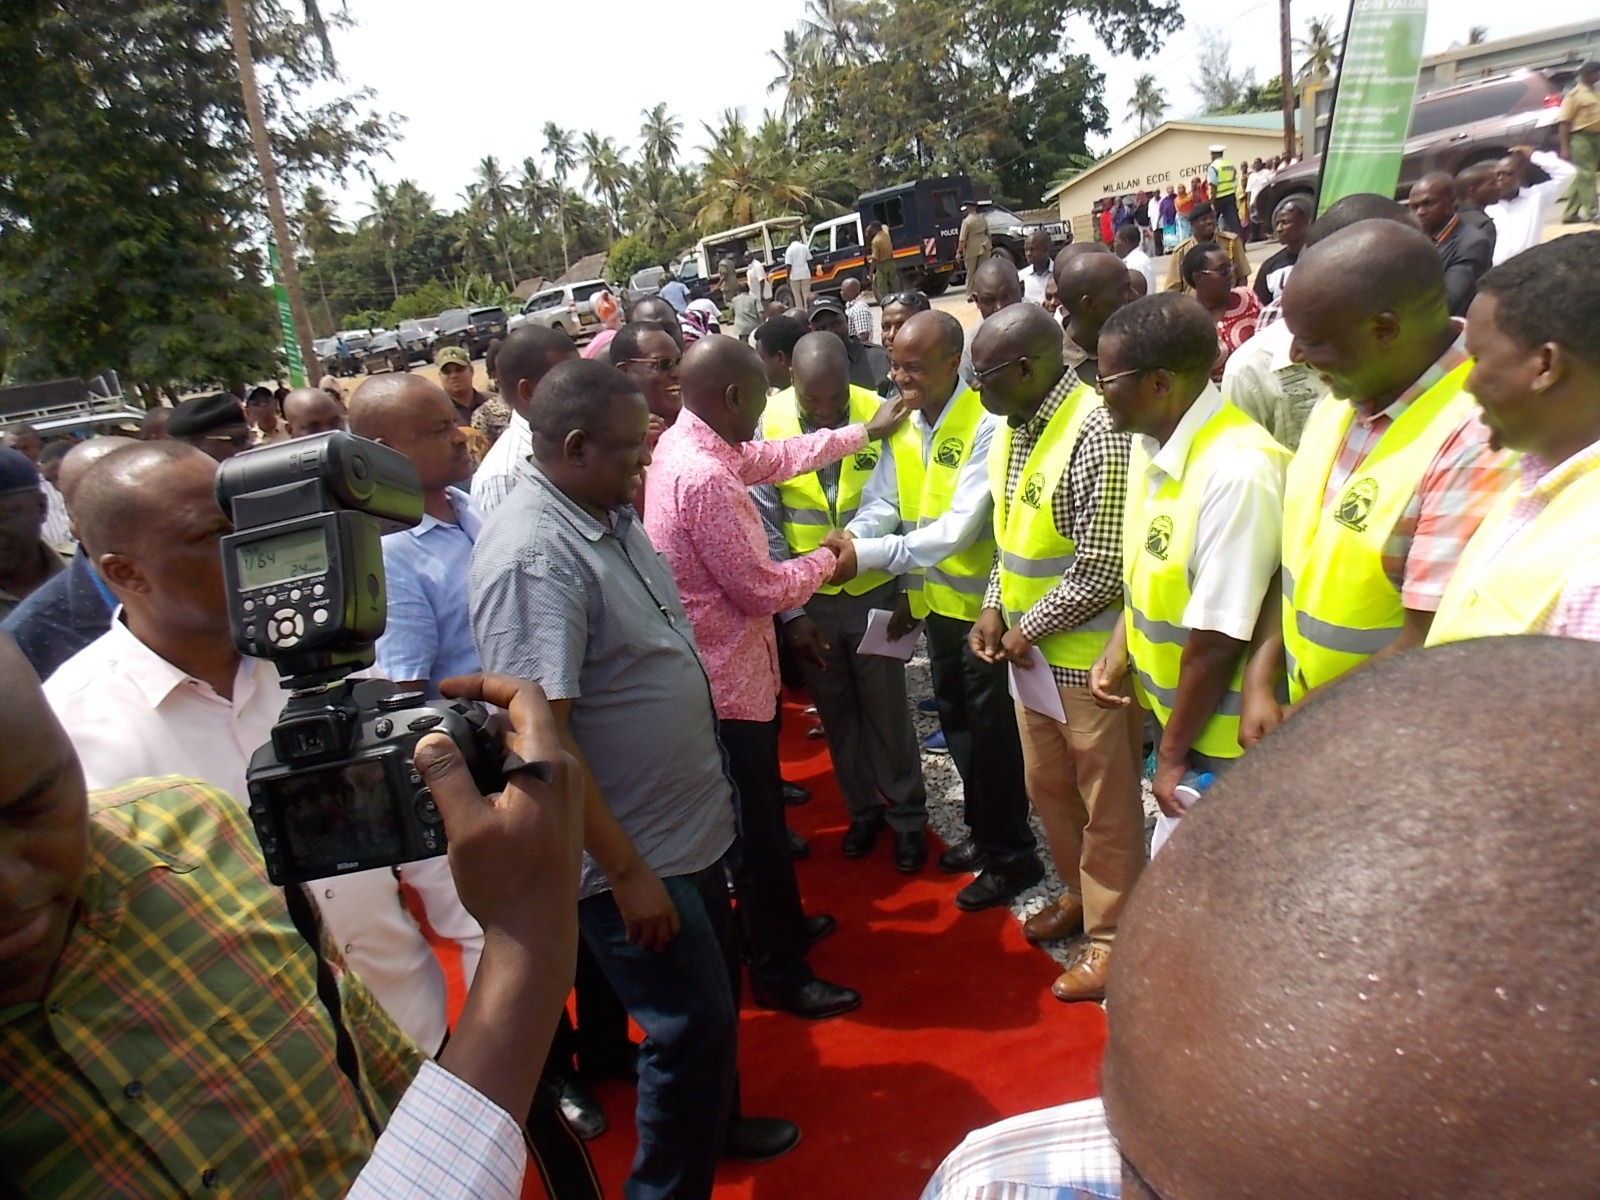 Milalani Mivumoni Kilulu road launch in Kwale on 17th March 2018